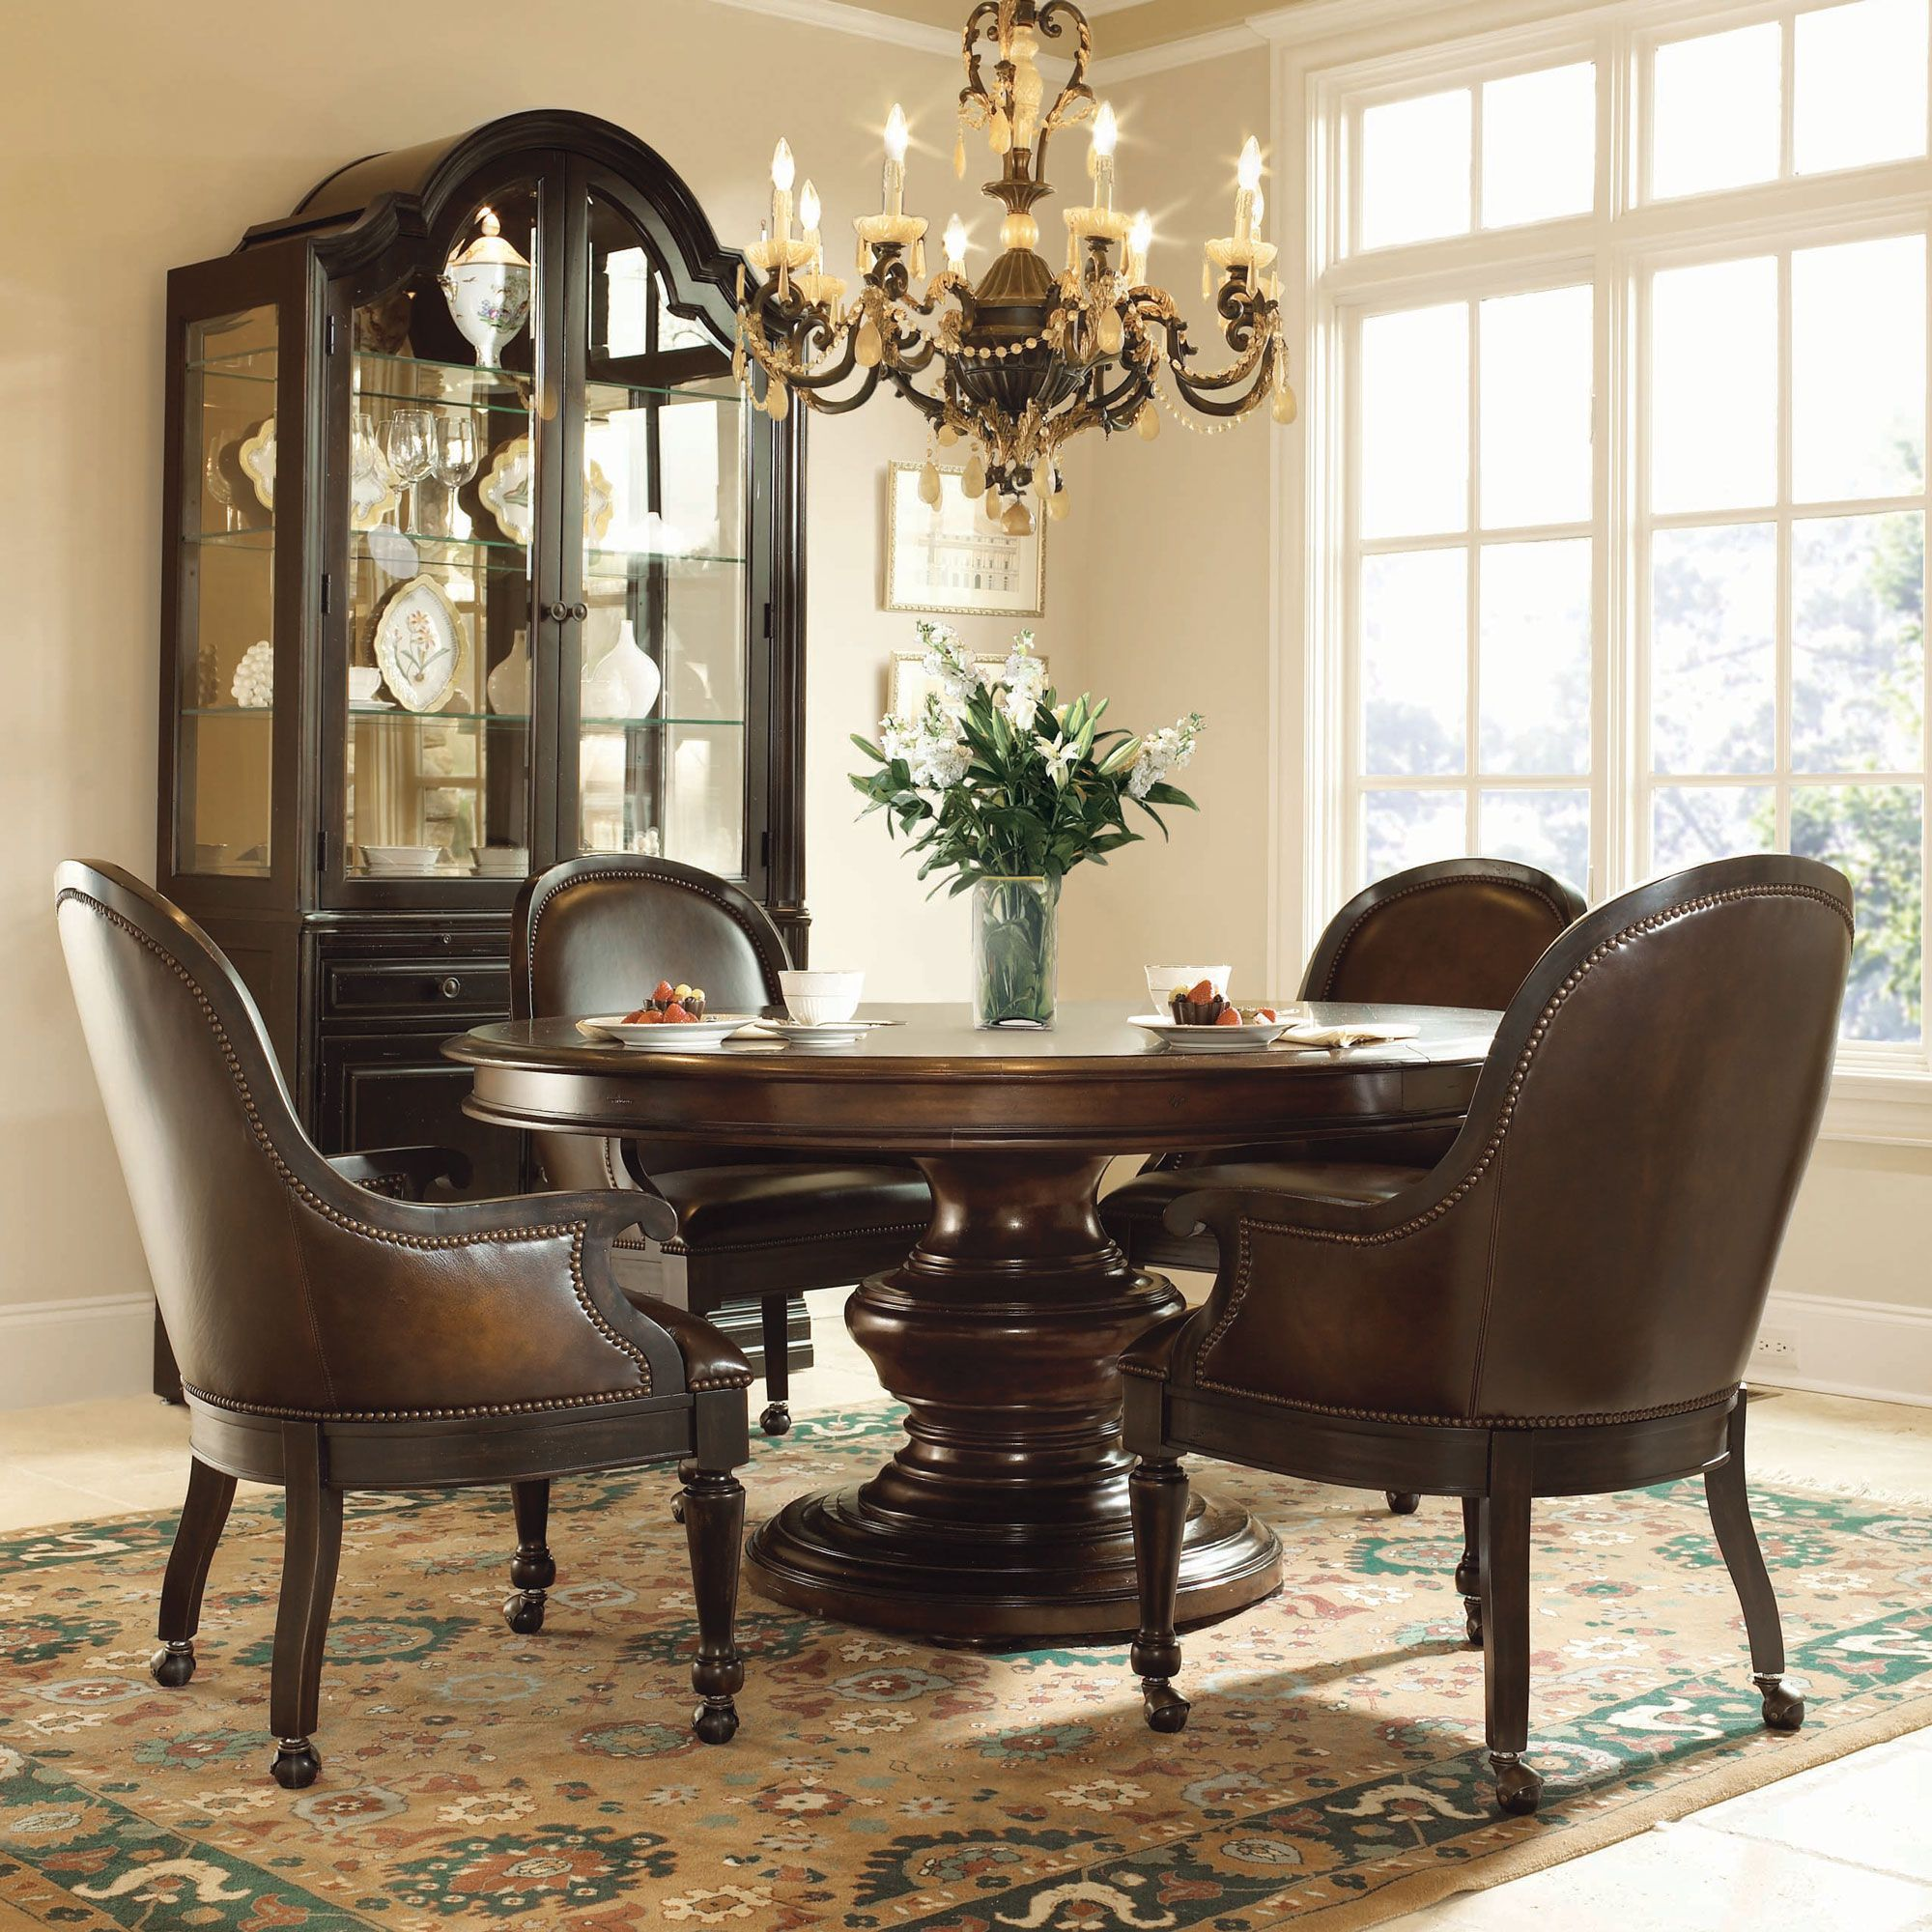 Kitchen Table With Chairs On Wheels: Bernhardt Normandie Manor 5pc Round Dining Room Set With